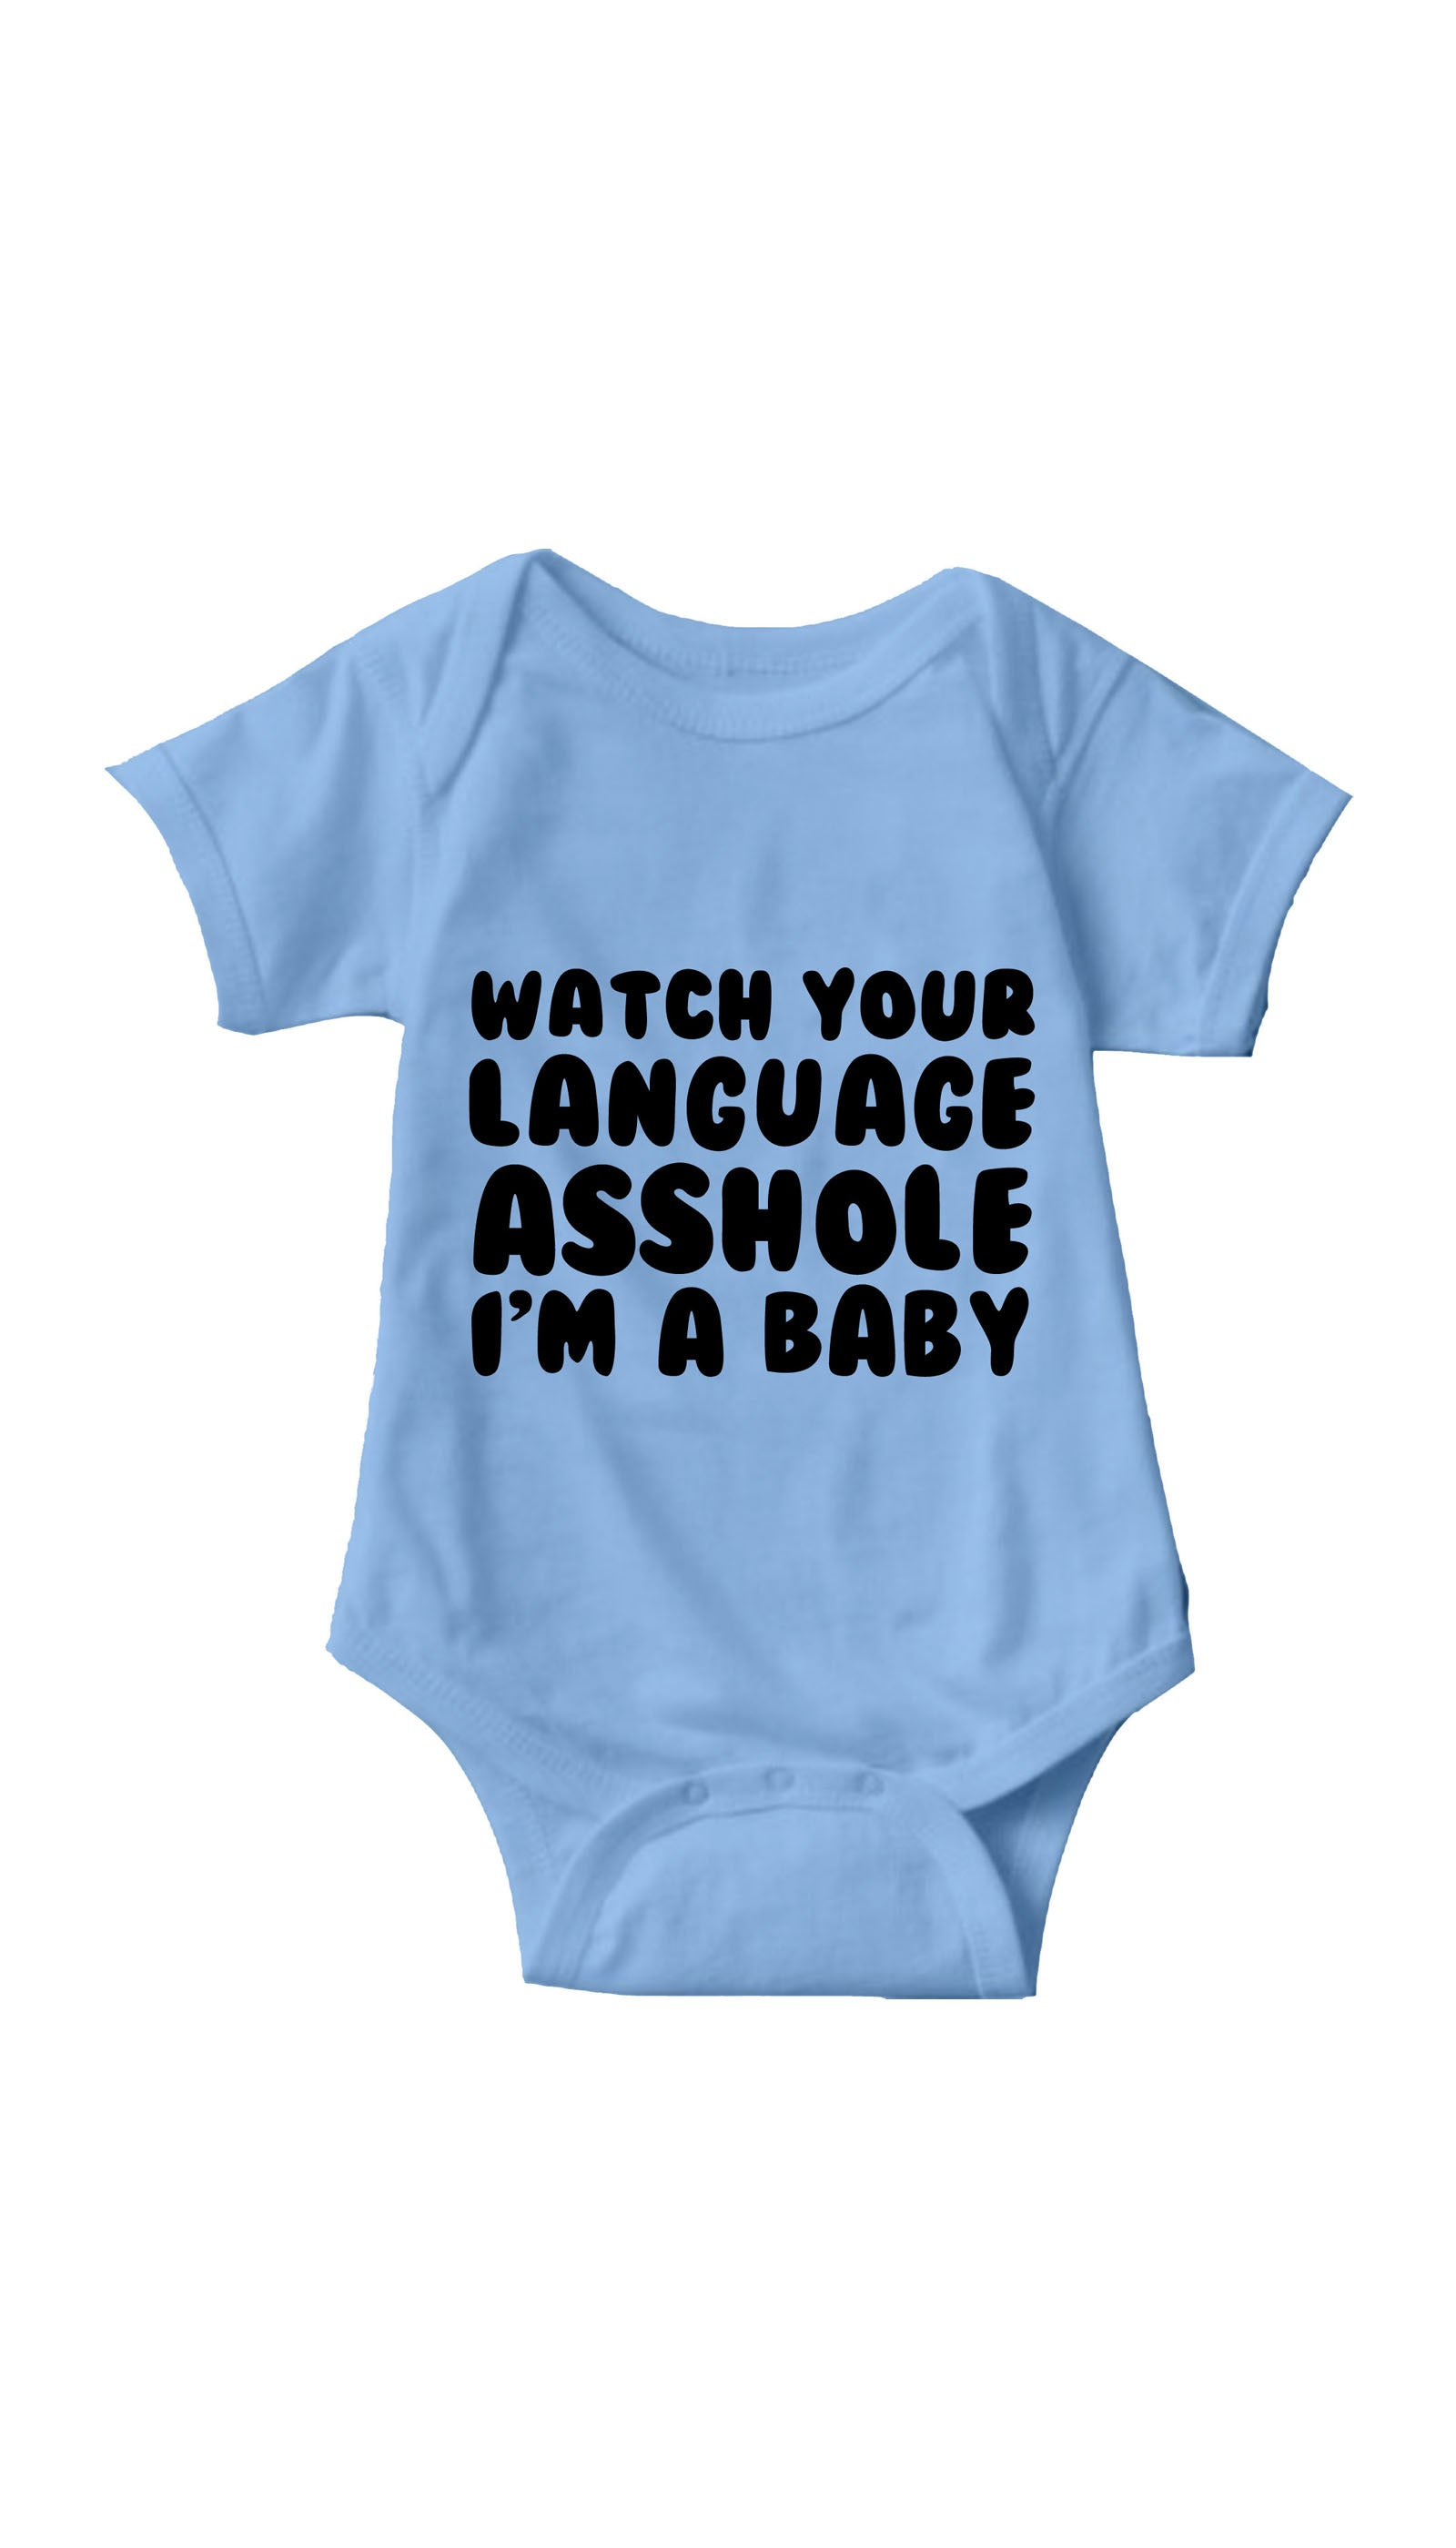 Watch Your Language Asshole Blue Infant Onesie | Sarcastic ME